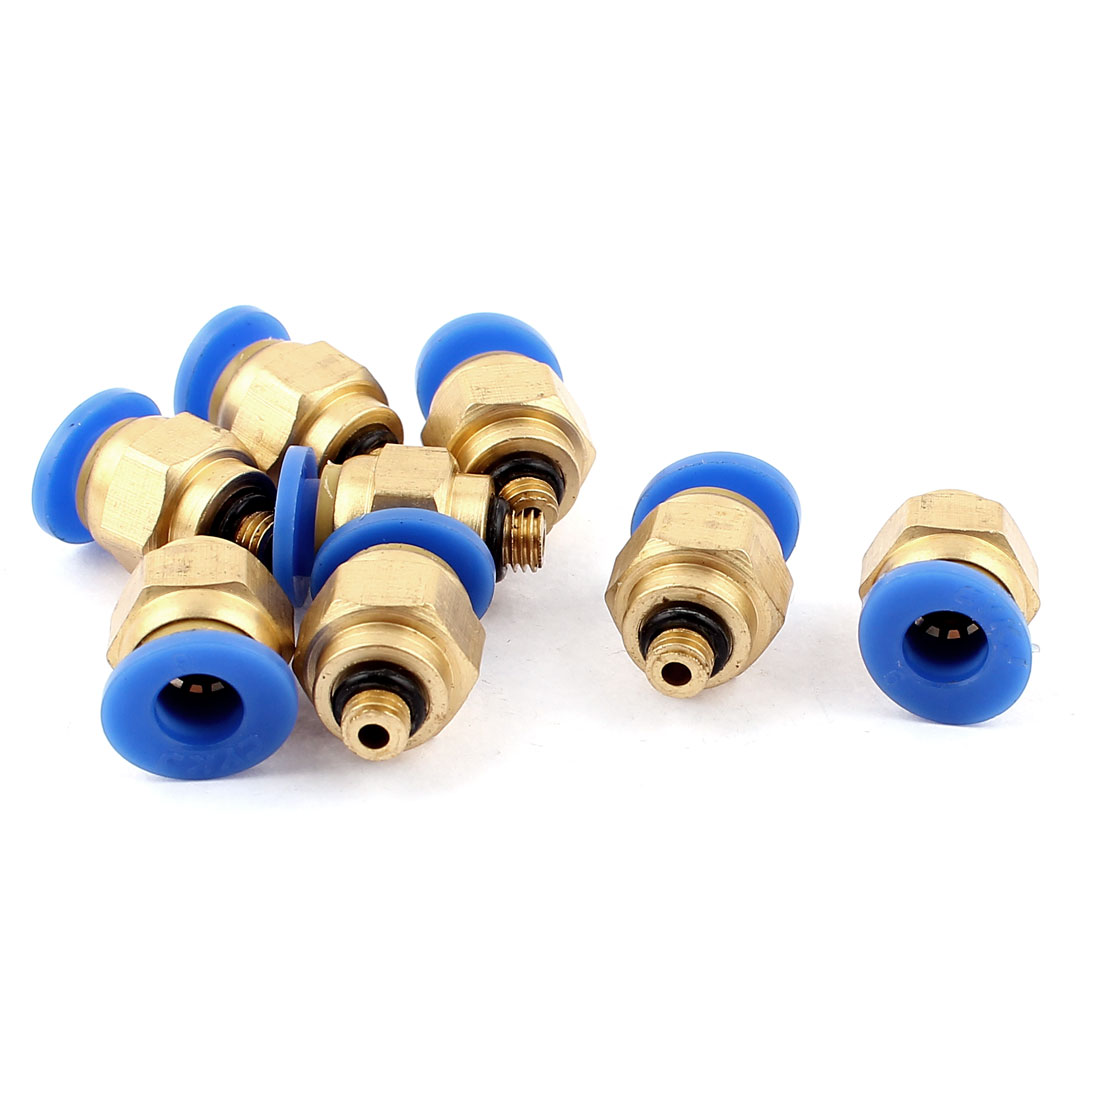 8 Pcs 6mm Tube to 1/16 BSP Thread Push in Quick Connect Coupler Fittings PC6-M5